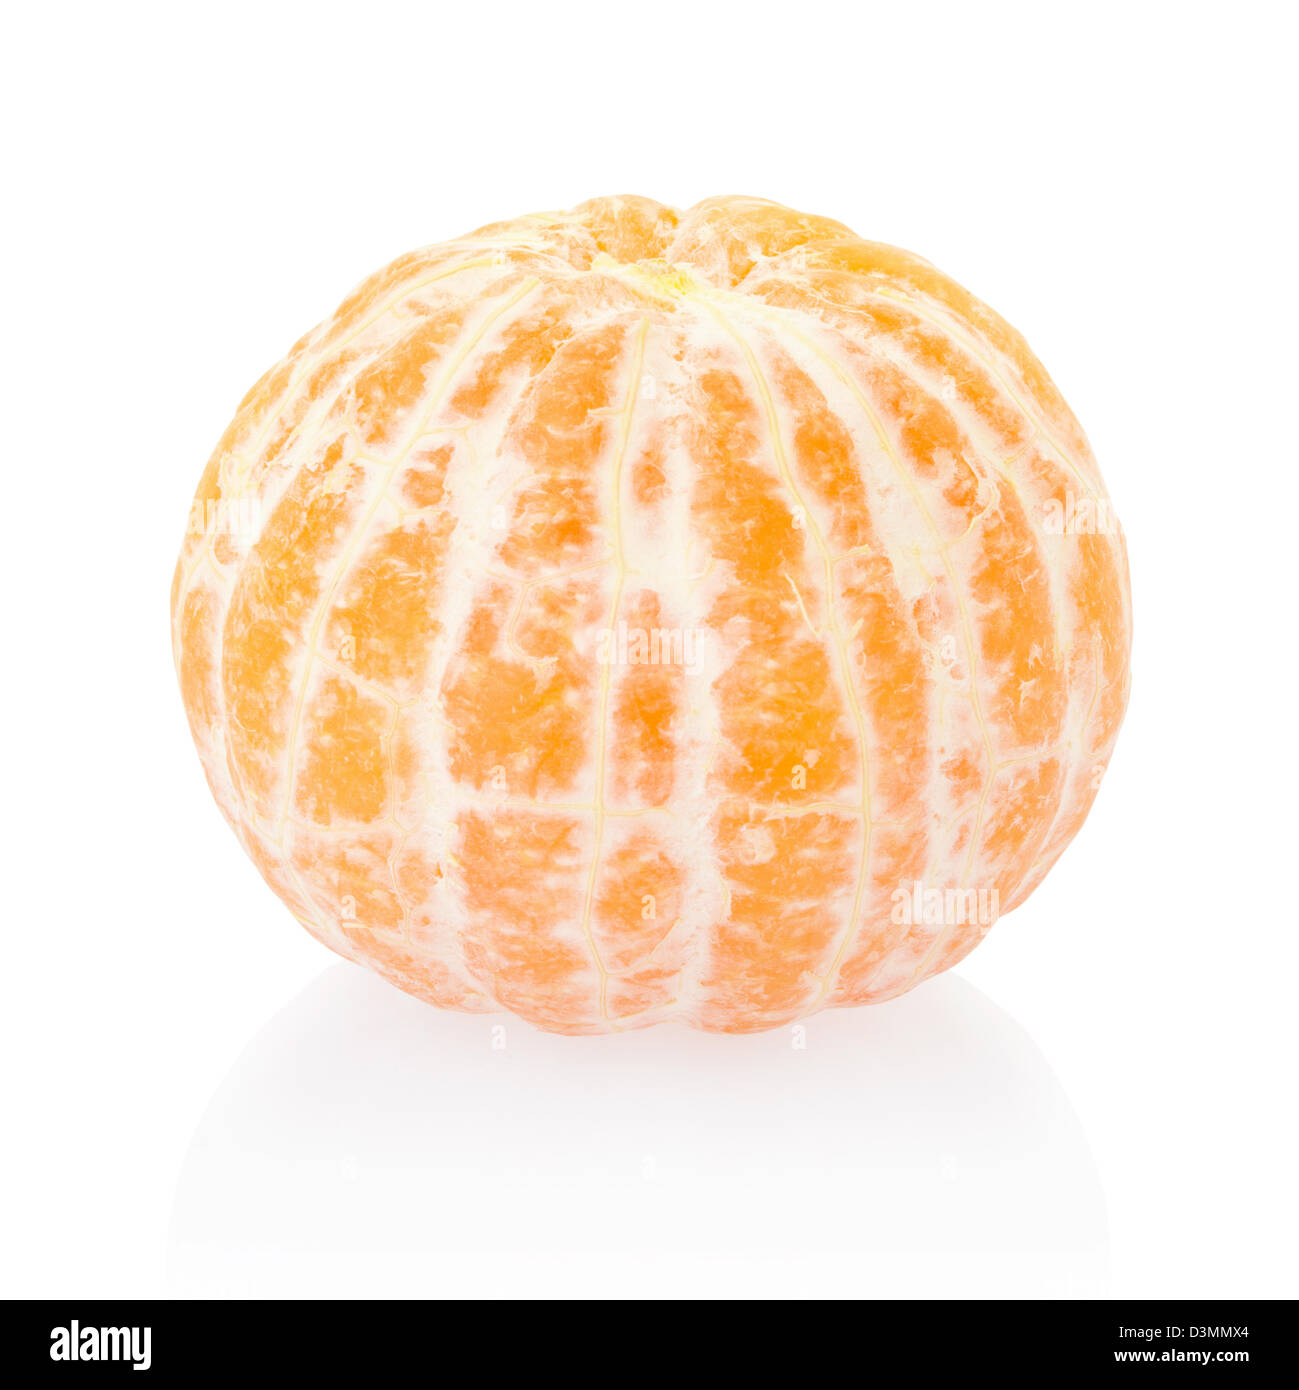 Tangerine without rind - Stock Image